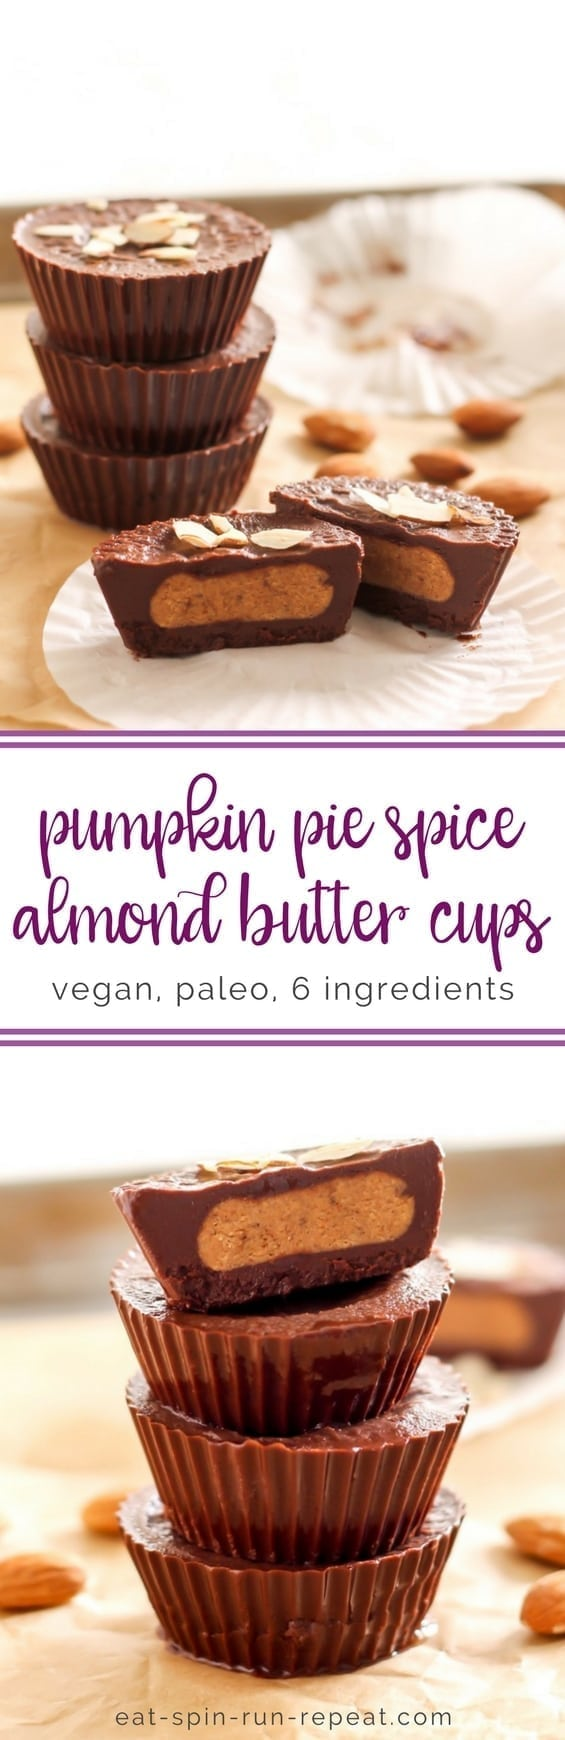 Pumpkin Pie Spice Almond Butter Cups || vegan, paleo, 6 ingredients! || Eat Spin Run Repeat